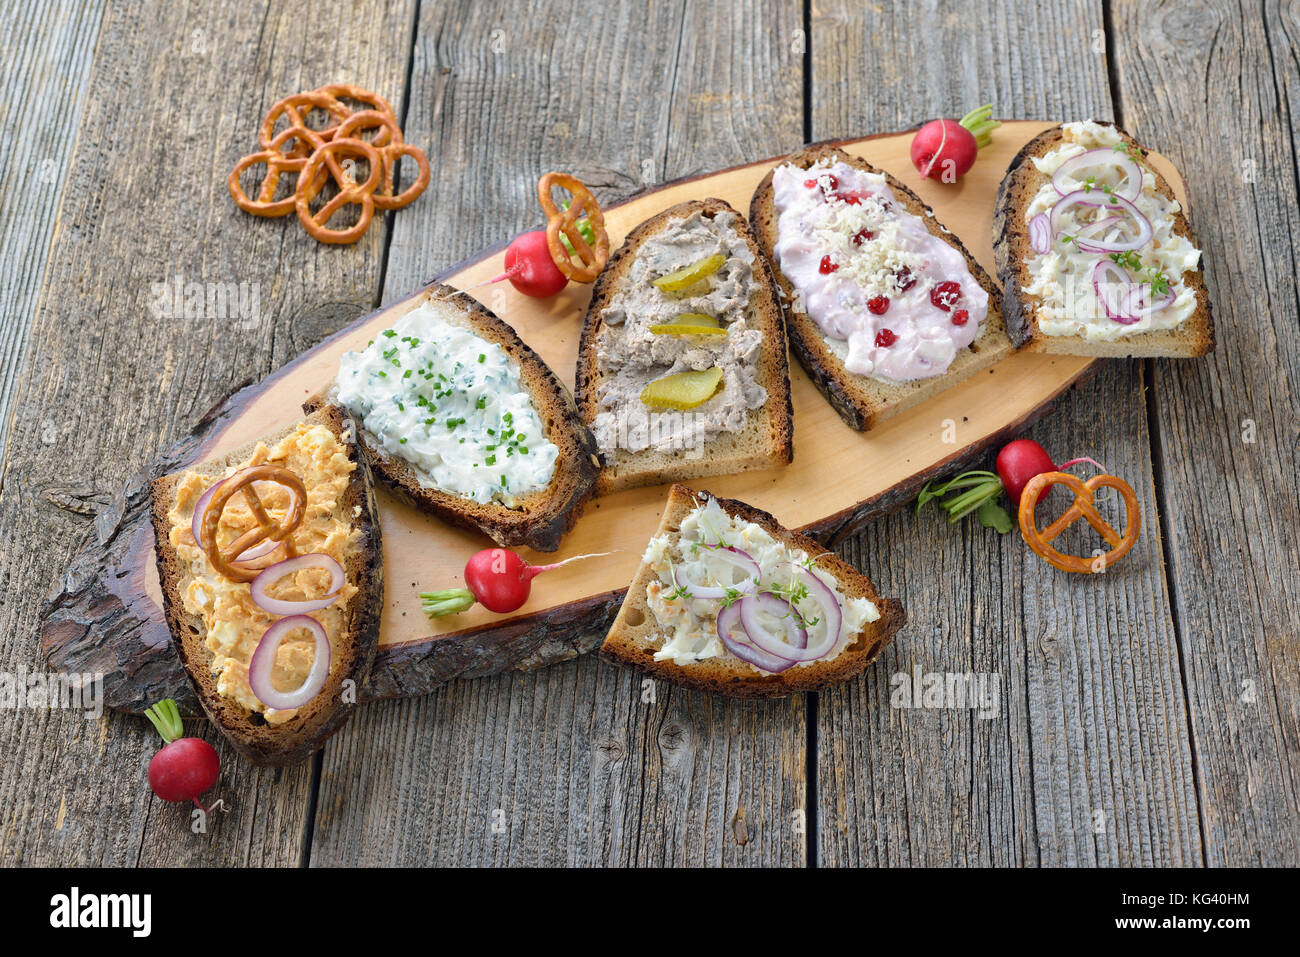 Hearty snack with different kinds of spreads on farmhouse bread served on an old wooden table - Stock Image